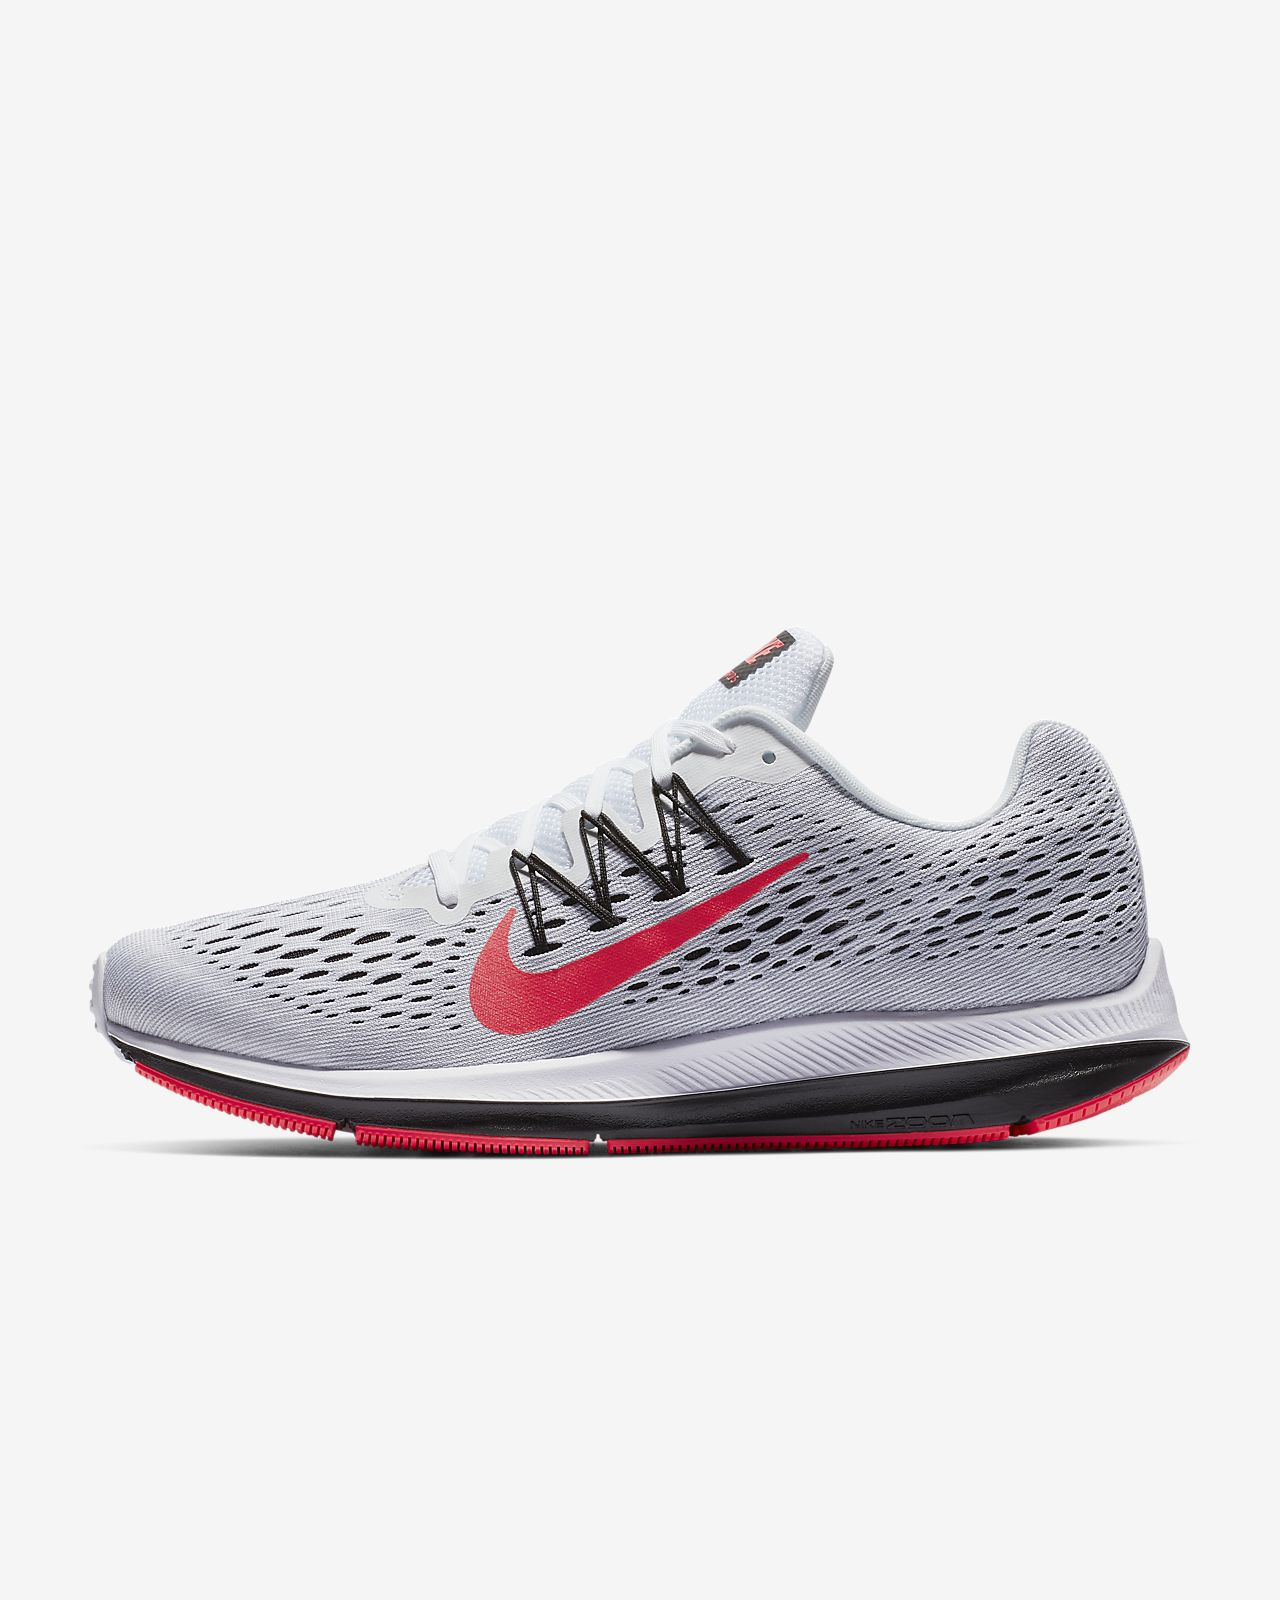 f9878d79105e3 Nike Air Zoom Winflo 5 Men s Running Shoe. Nike.com IN